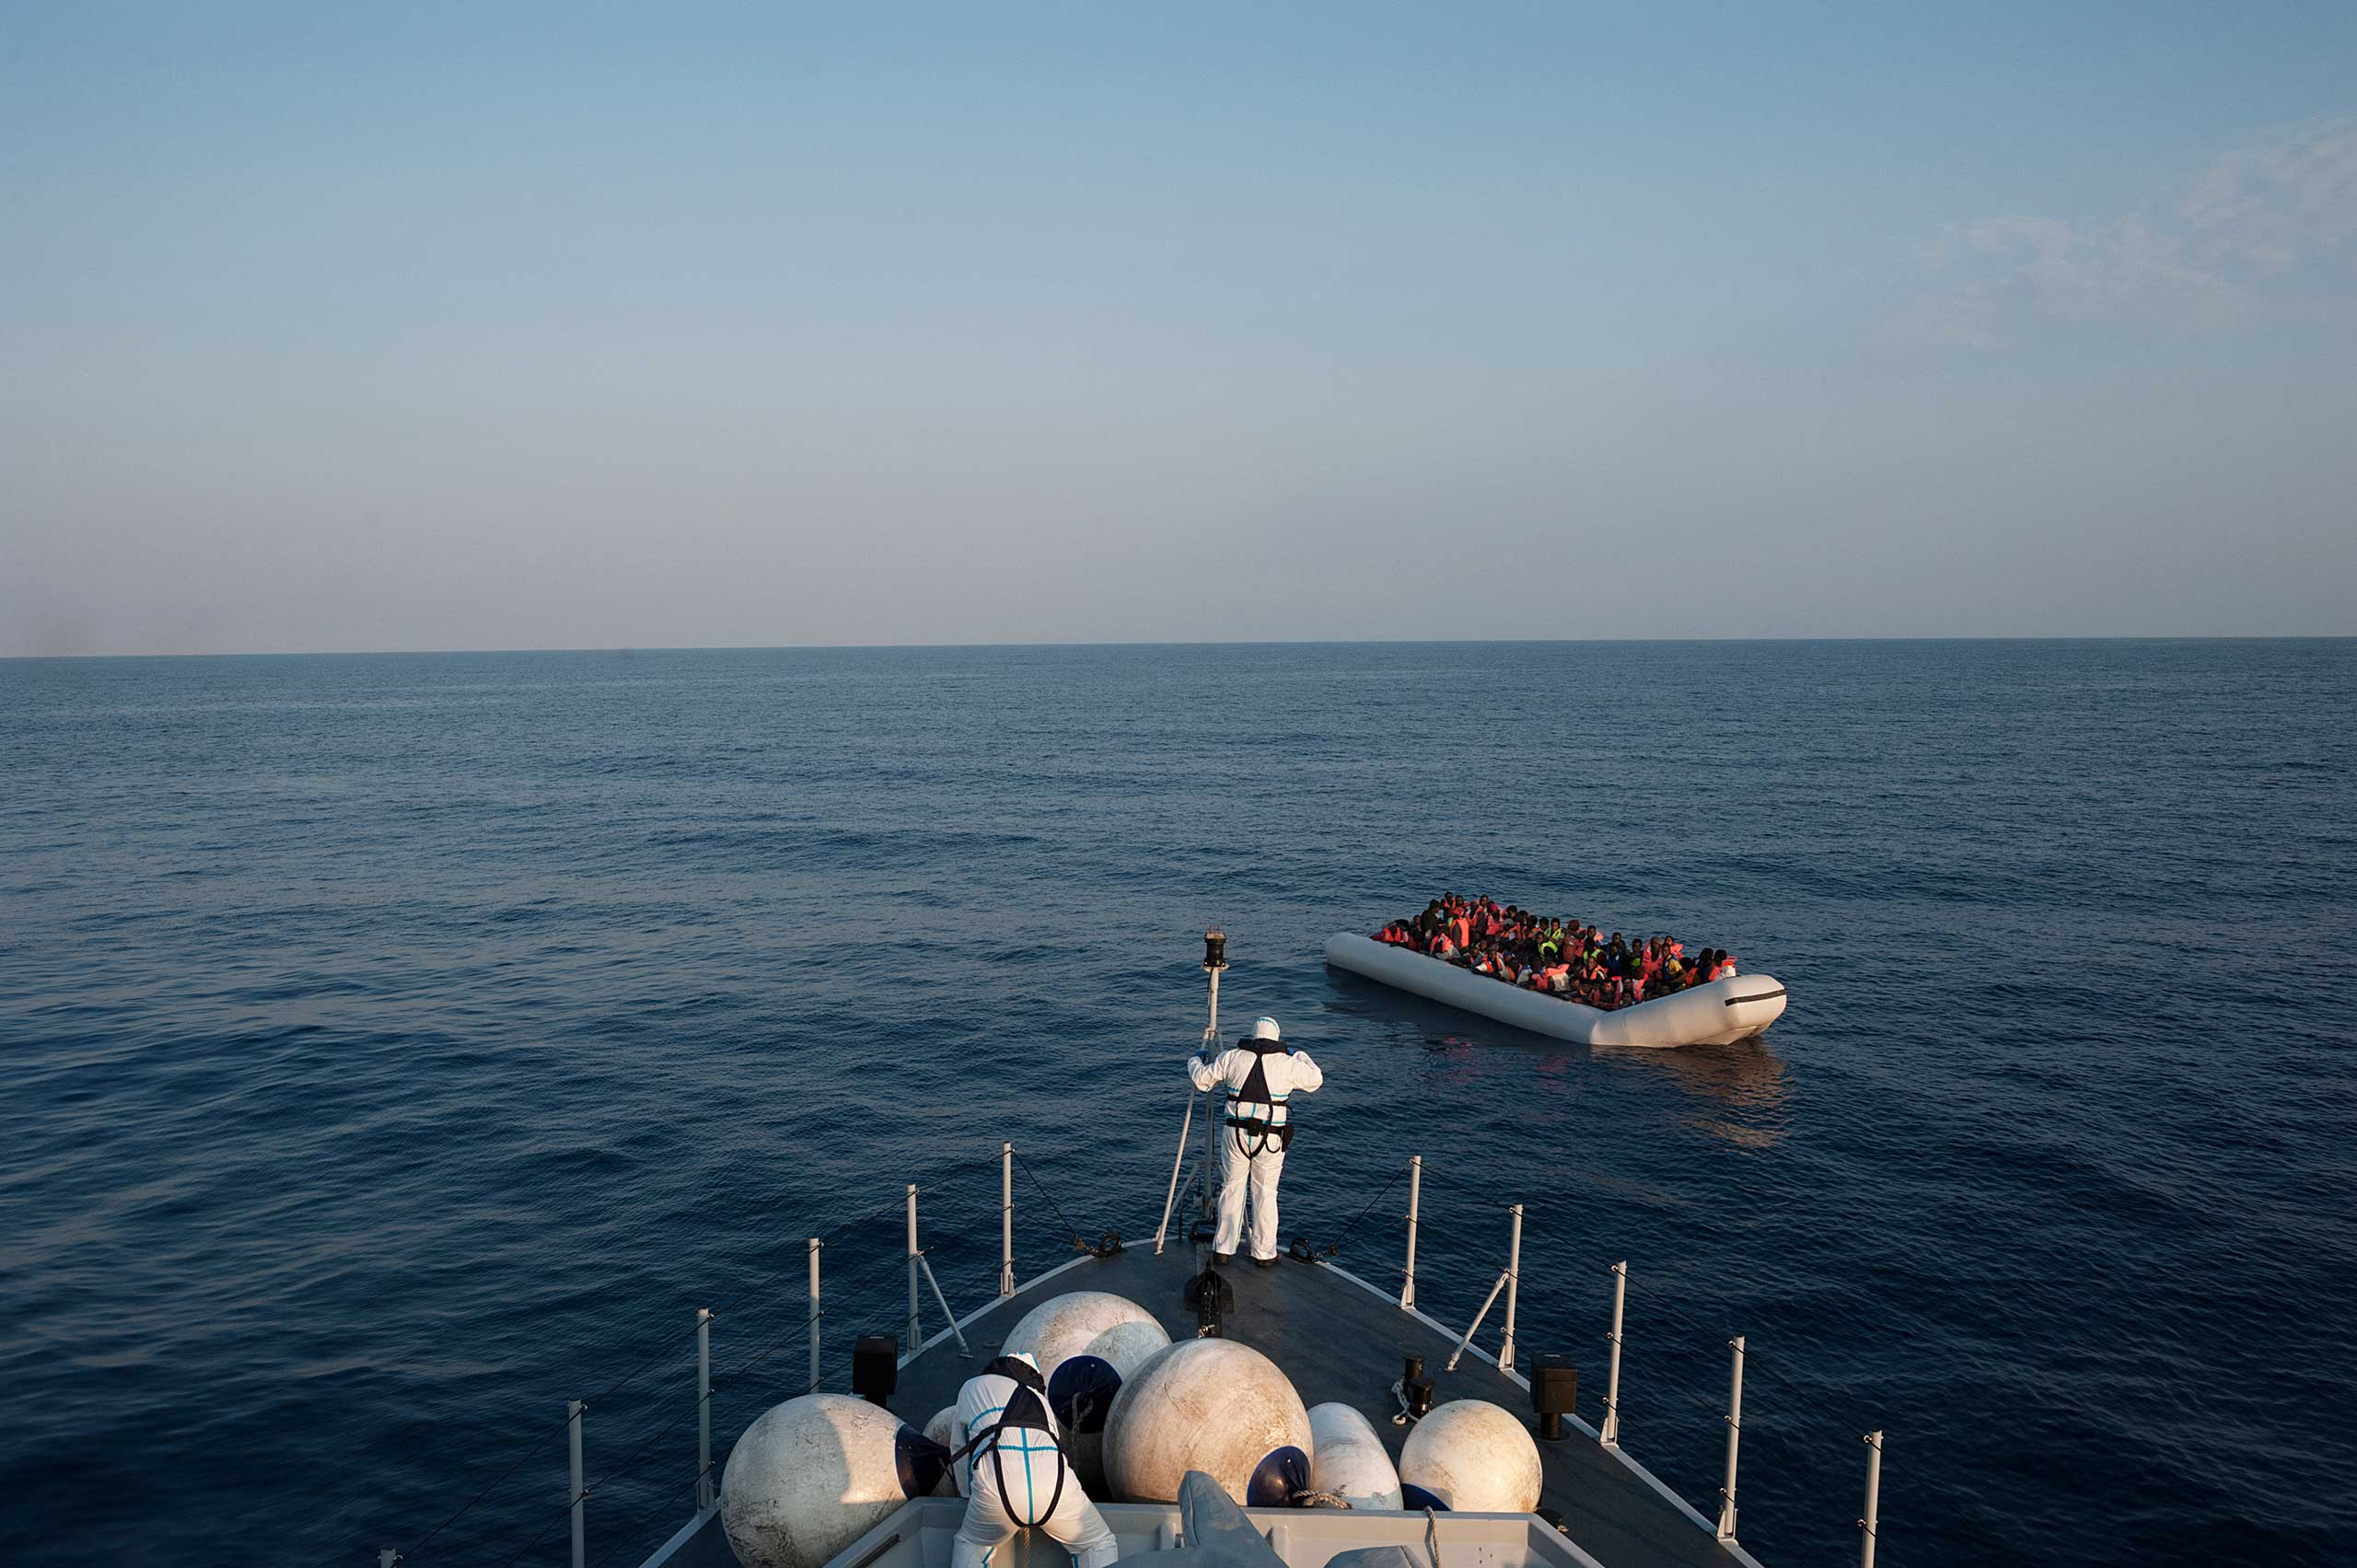 A ship belonging to Italian authorities approaches one of three migrant rafts some 120 miles off the Italian coast, about 40 miles from Libya, on June 6, 2015.